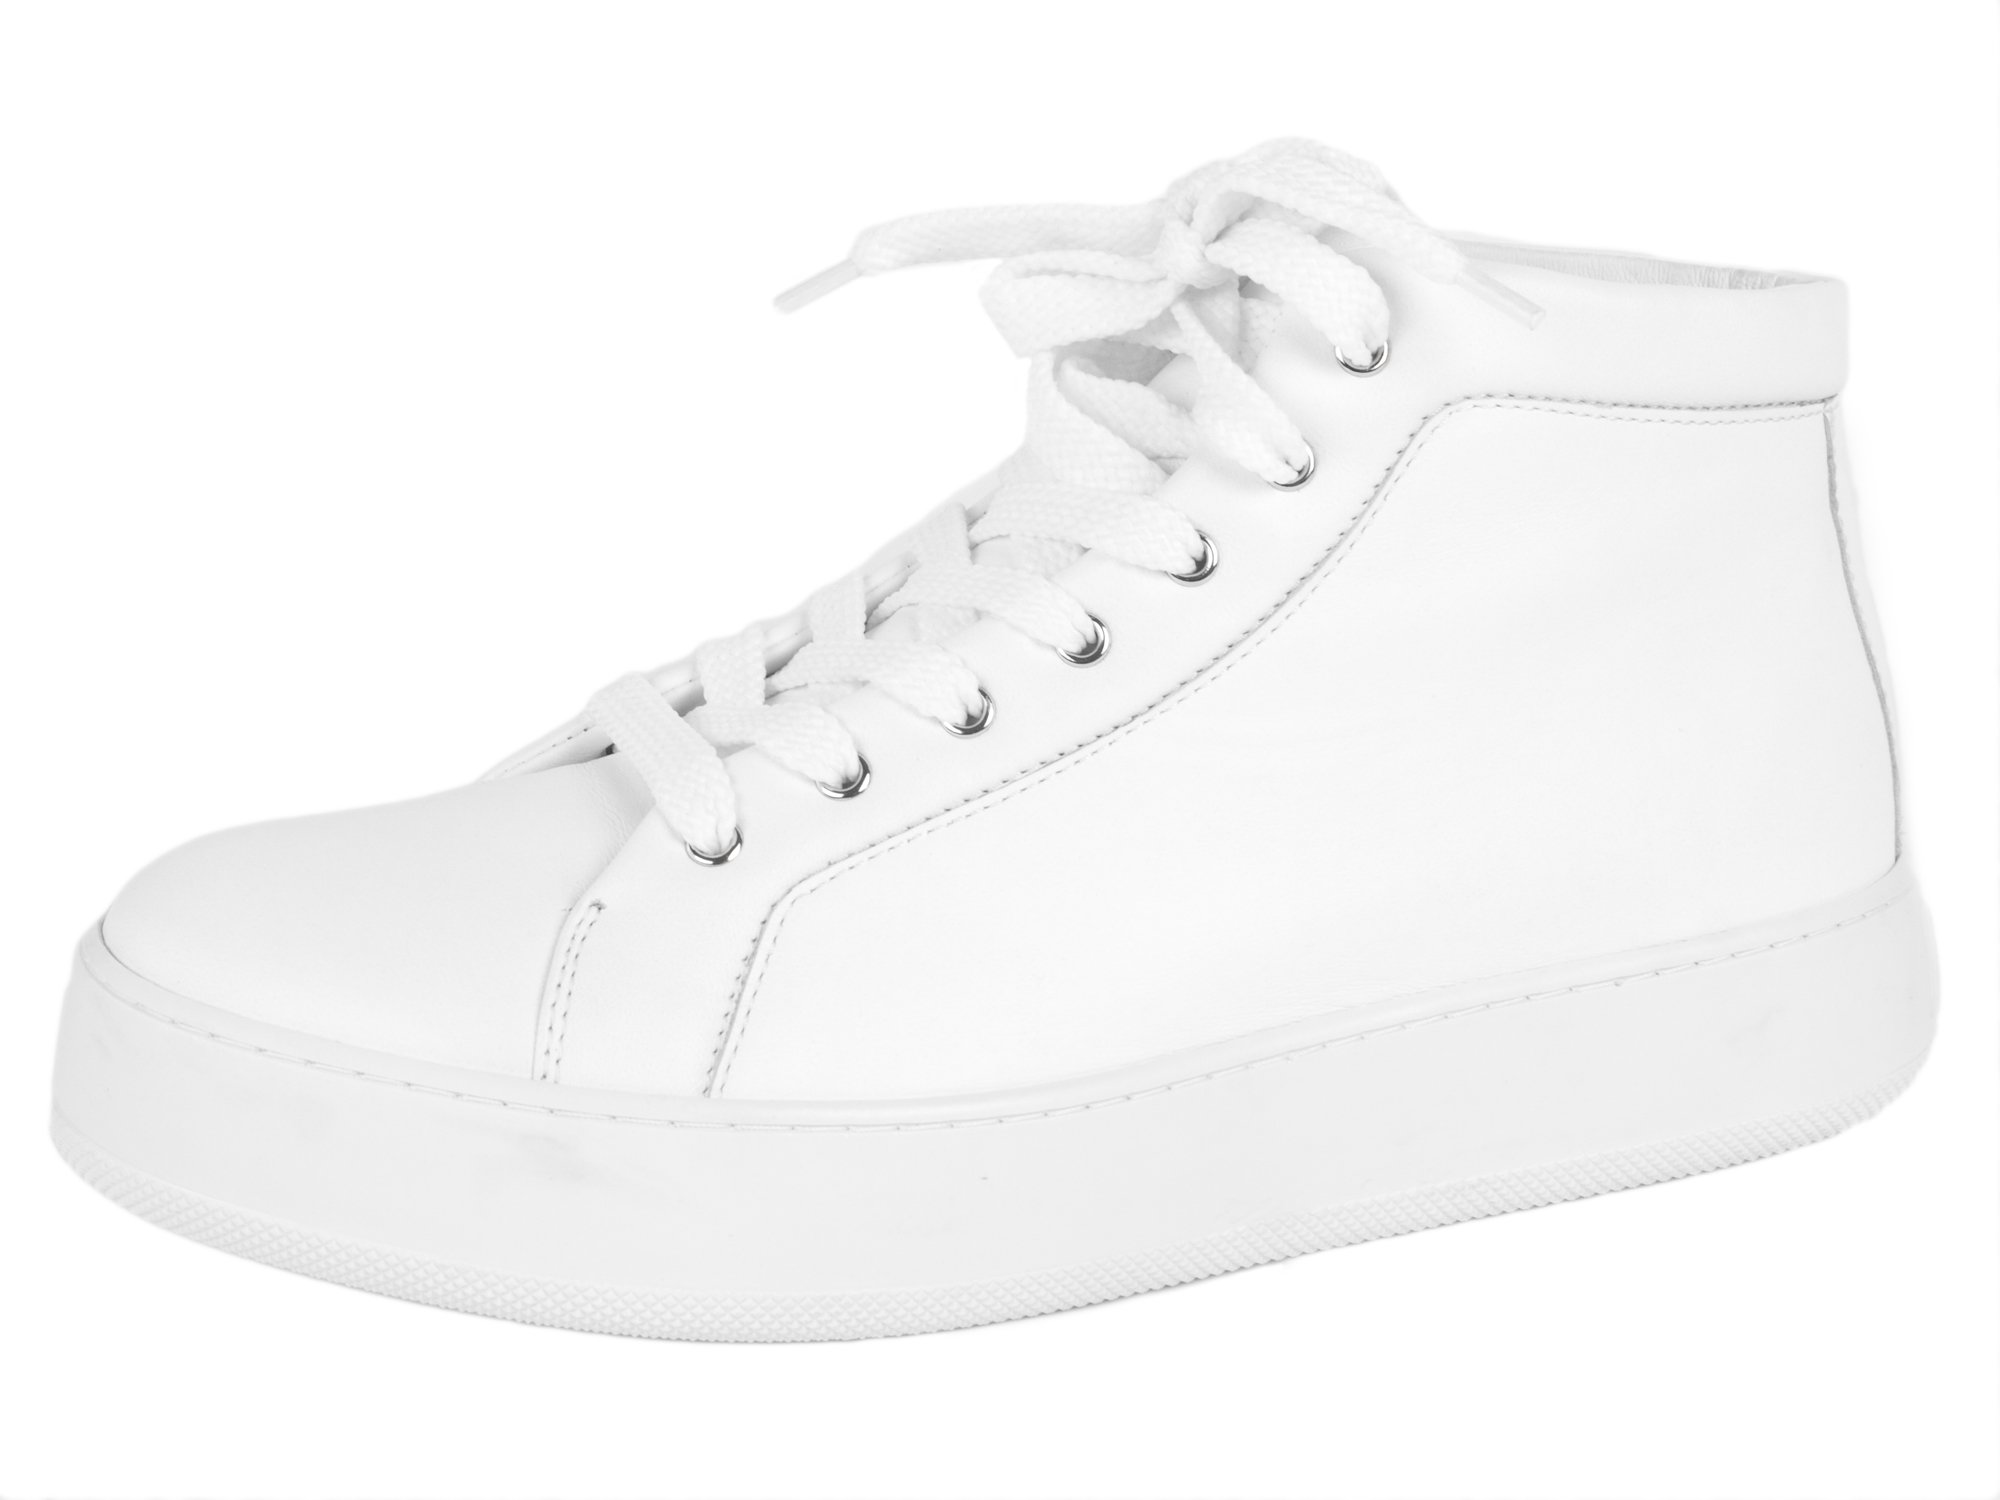 MaxMara Women's MM48 Leather High Top Sneakers US 8.5/IT 38.5 White